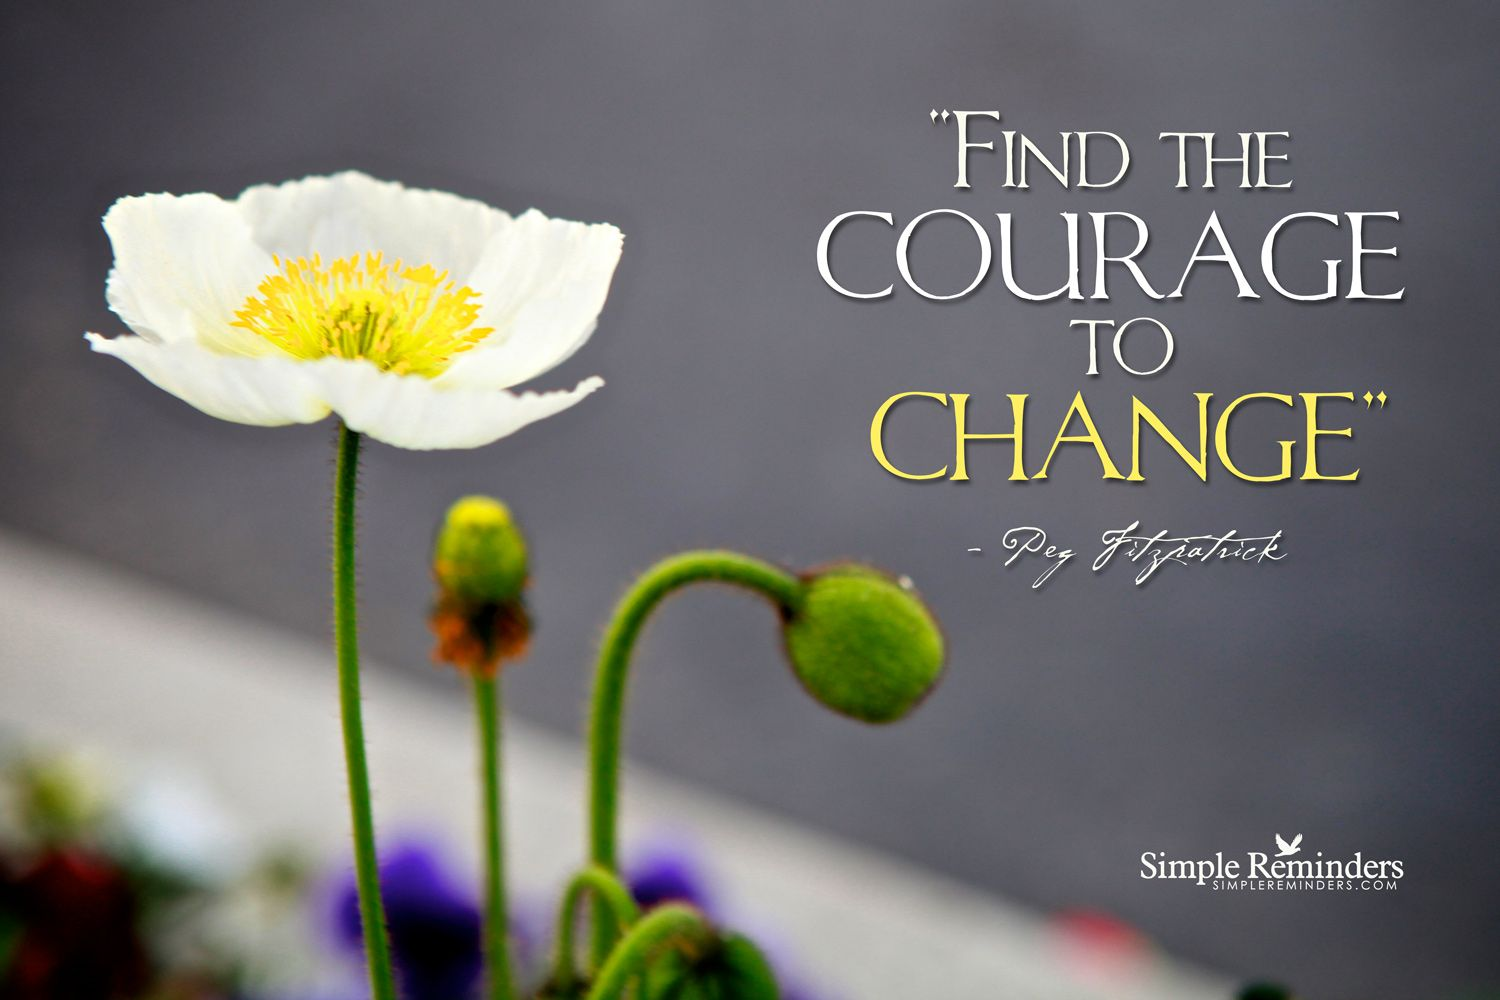 Let Courage to be Your Friend. ~Peg Fitzpatrick  #motivation #change #courage #flowers #empowerment  @SIMPLE Comunicación Reminders